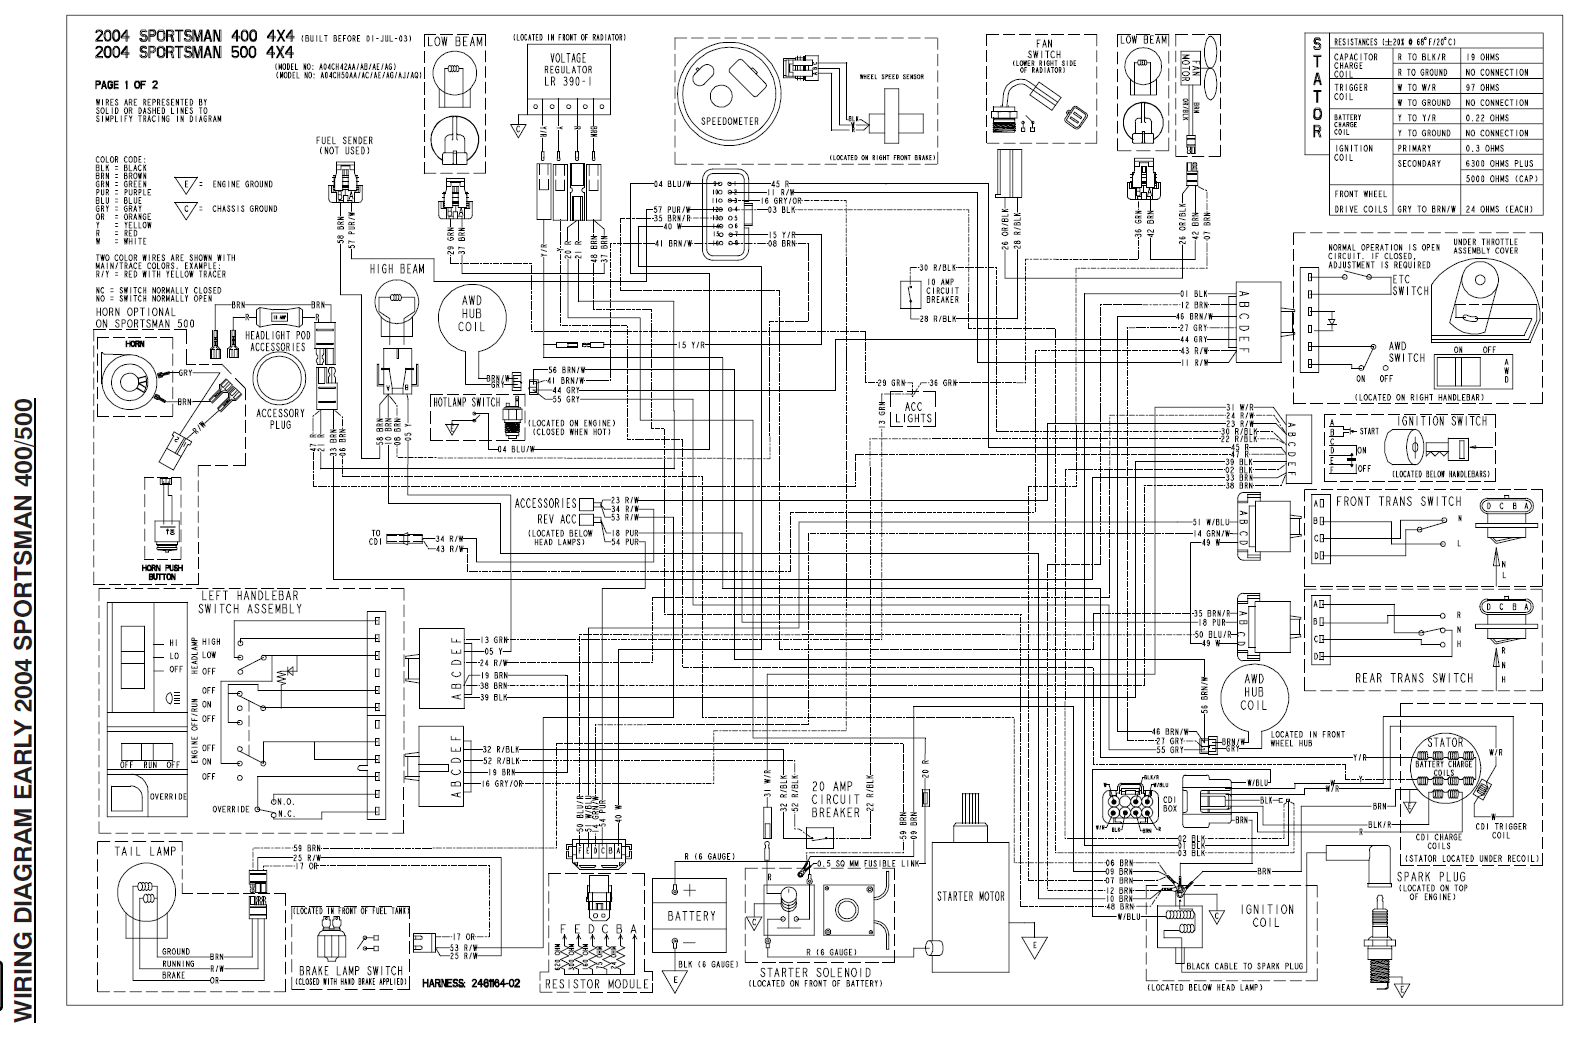 [DIAGRAM] 2003 Sportsman 500 Wiring Diagram FULL Version